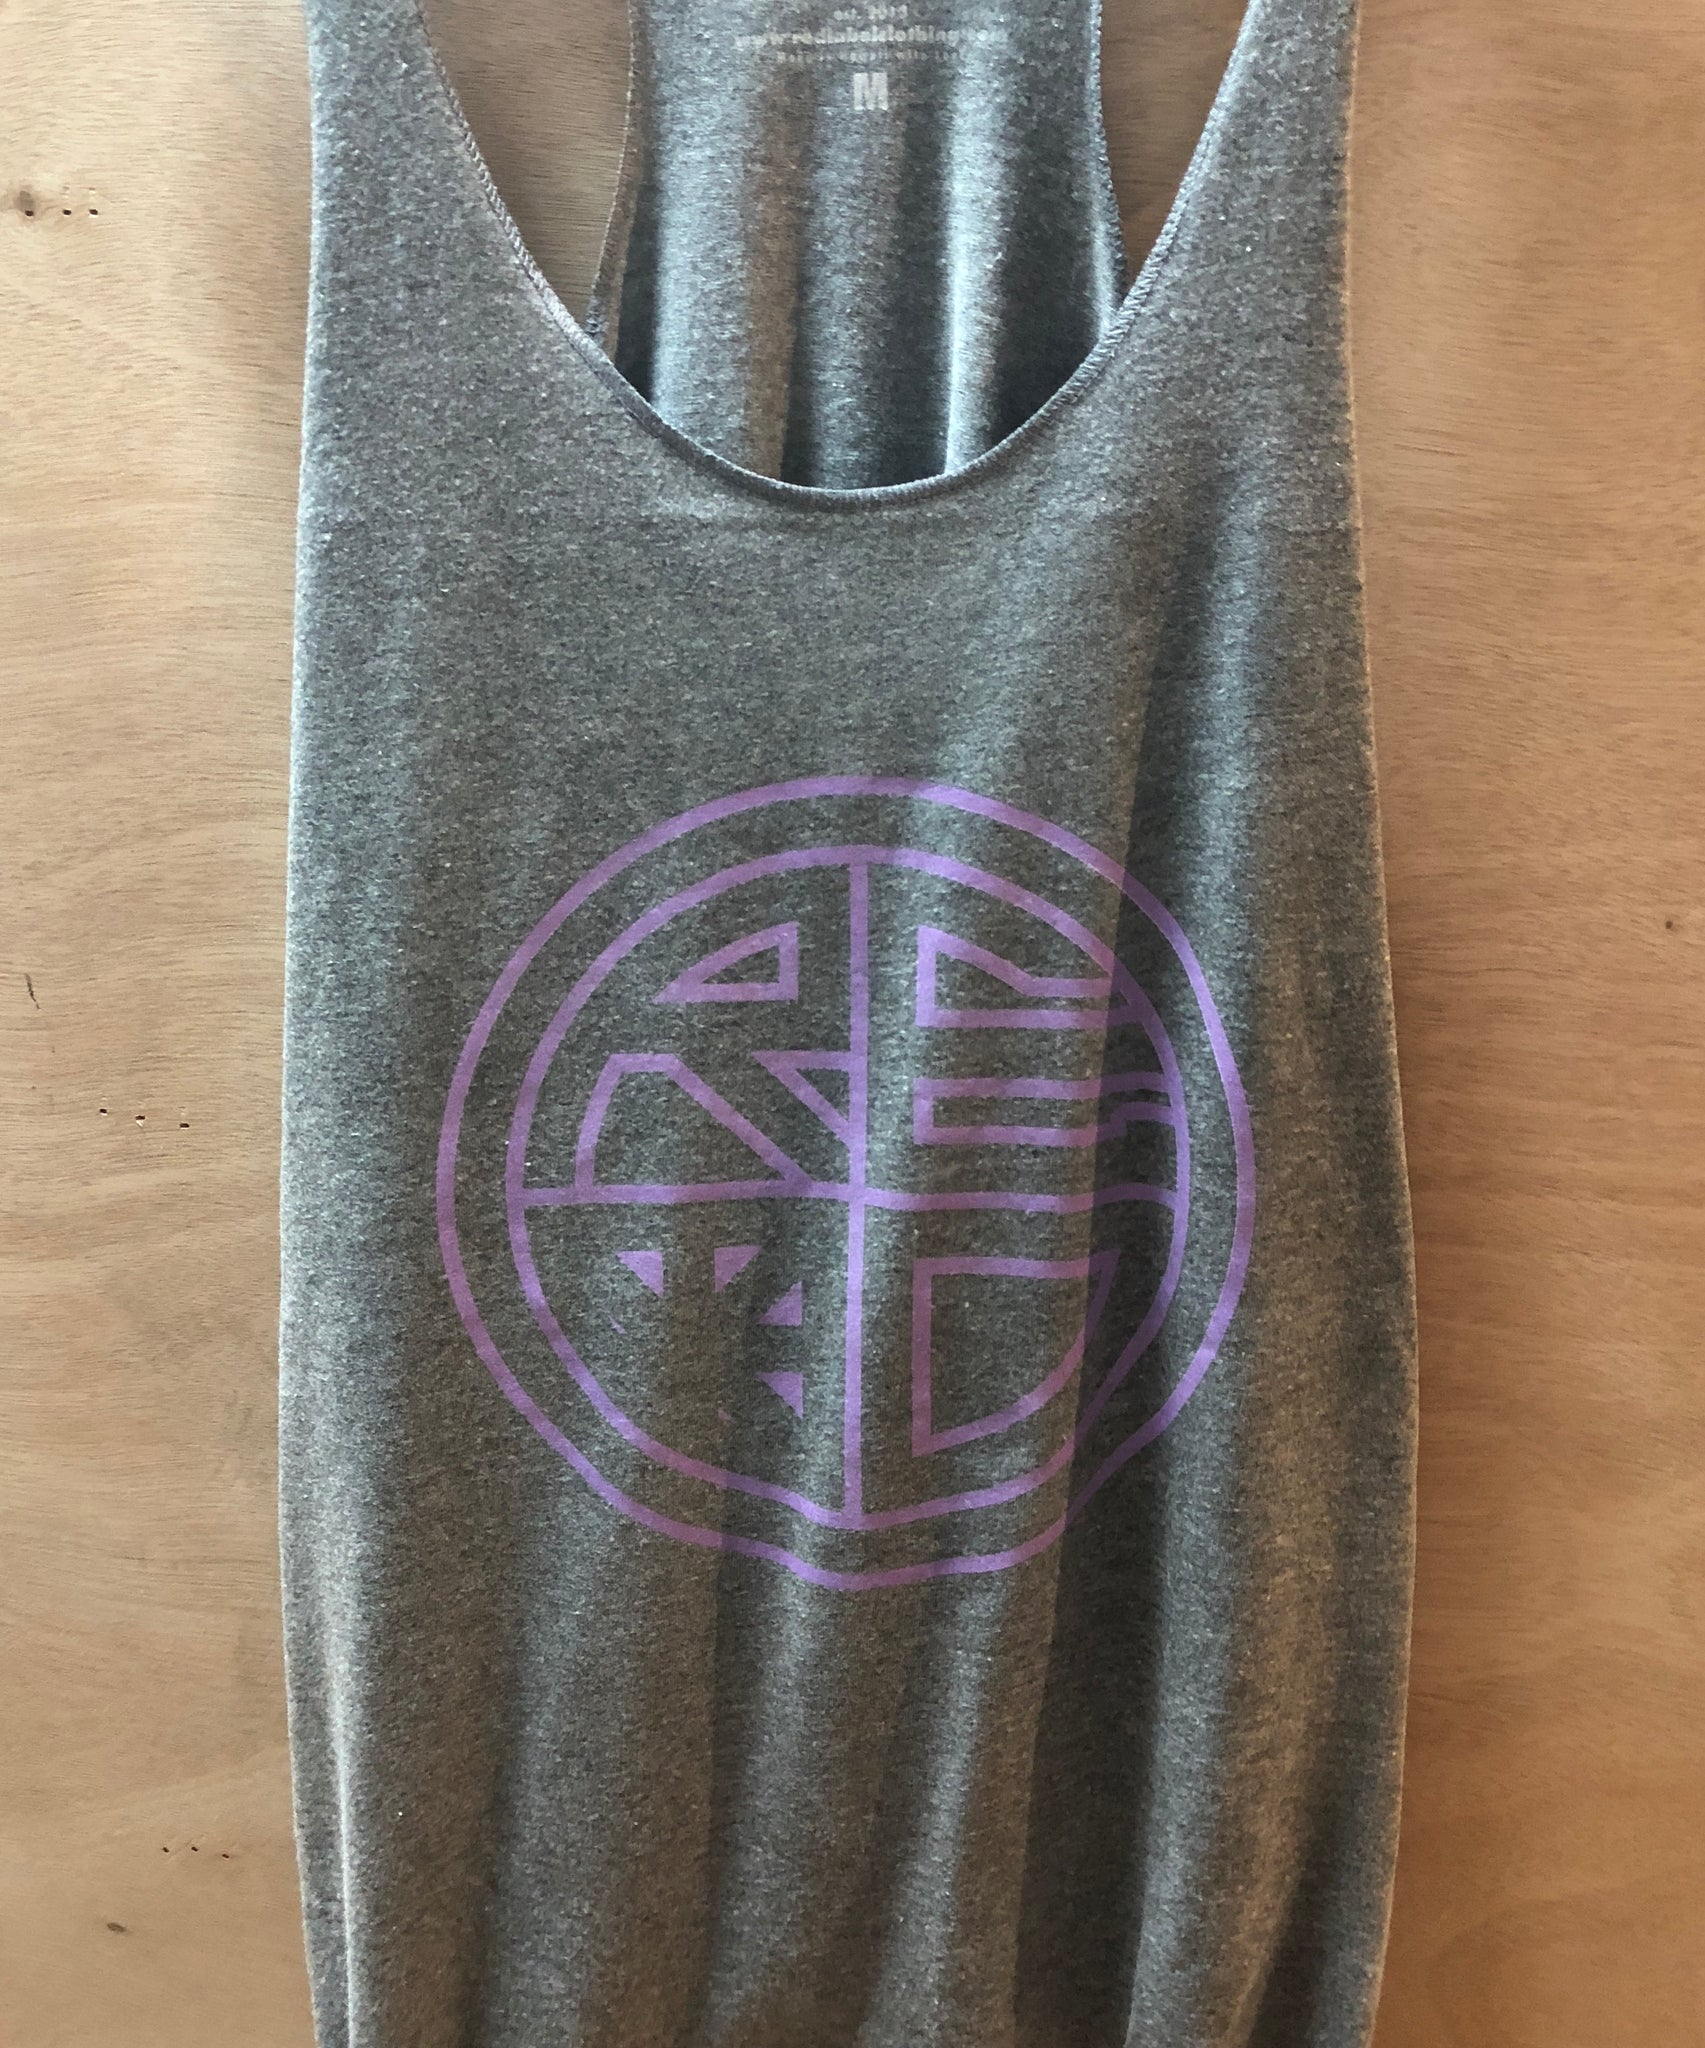 Classic Logo Outline Women's Tank Grey/Purple - Red Label Clothing Inc